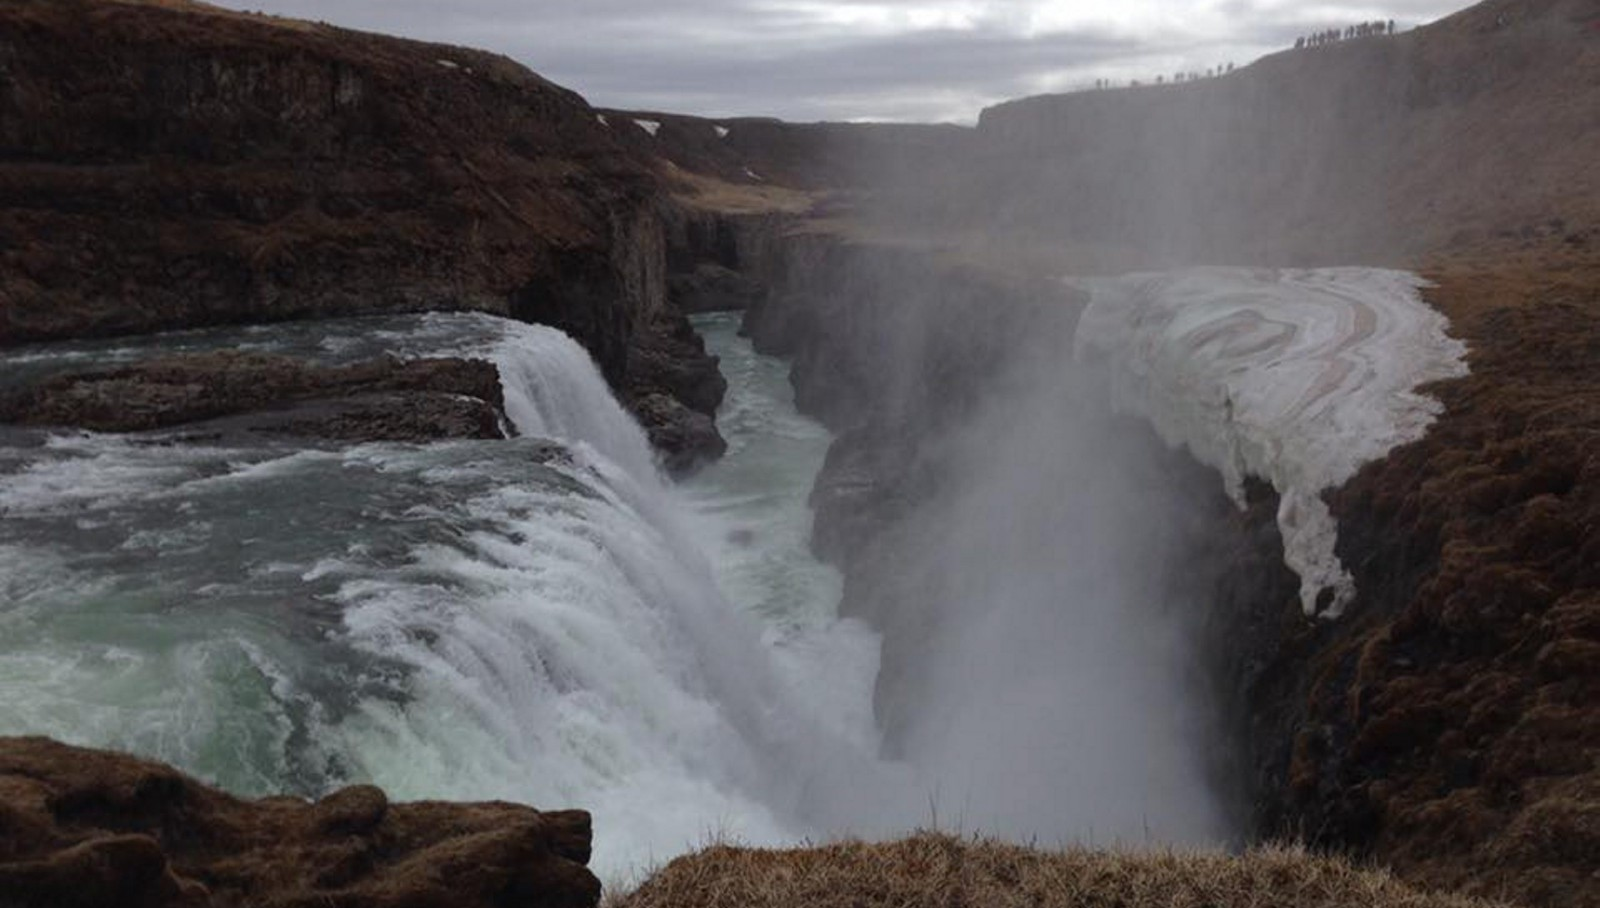 JoAnn Falletta took this scenic photo on her visit to Iceland where she worked with the Iceland Symphony.